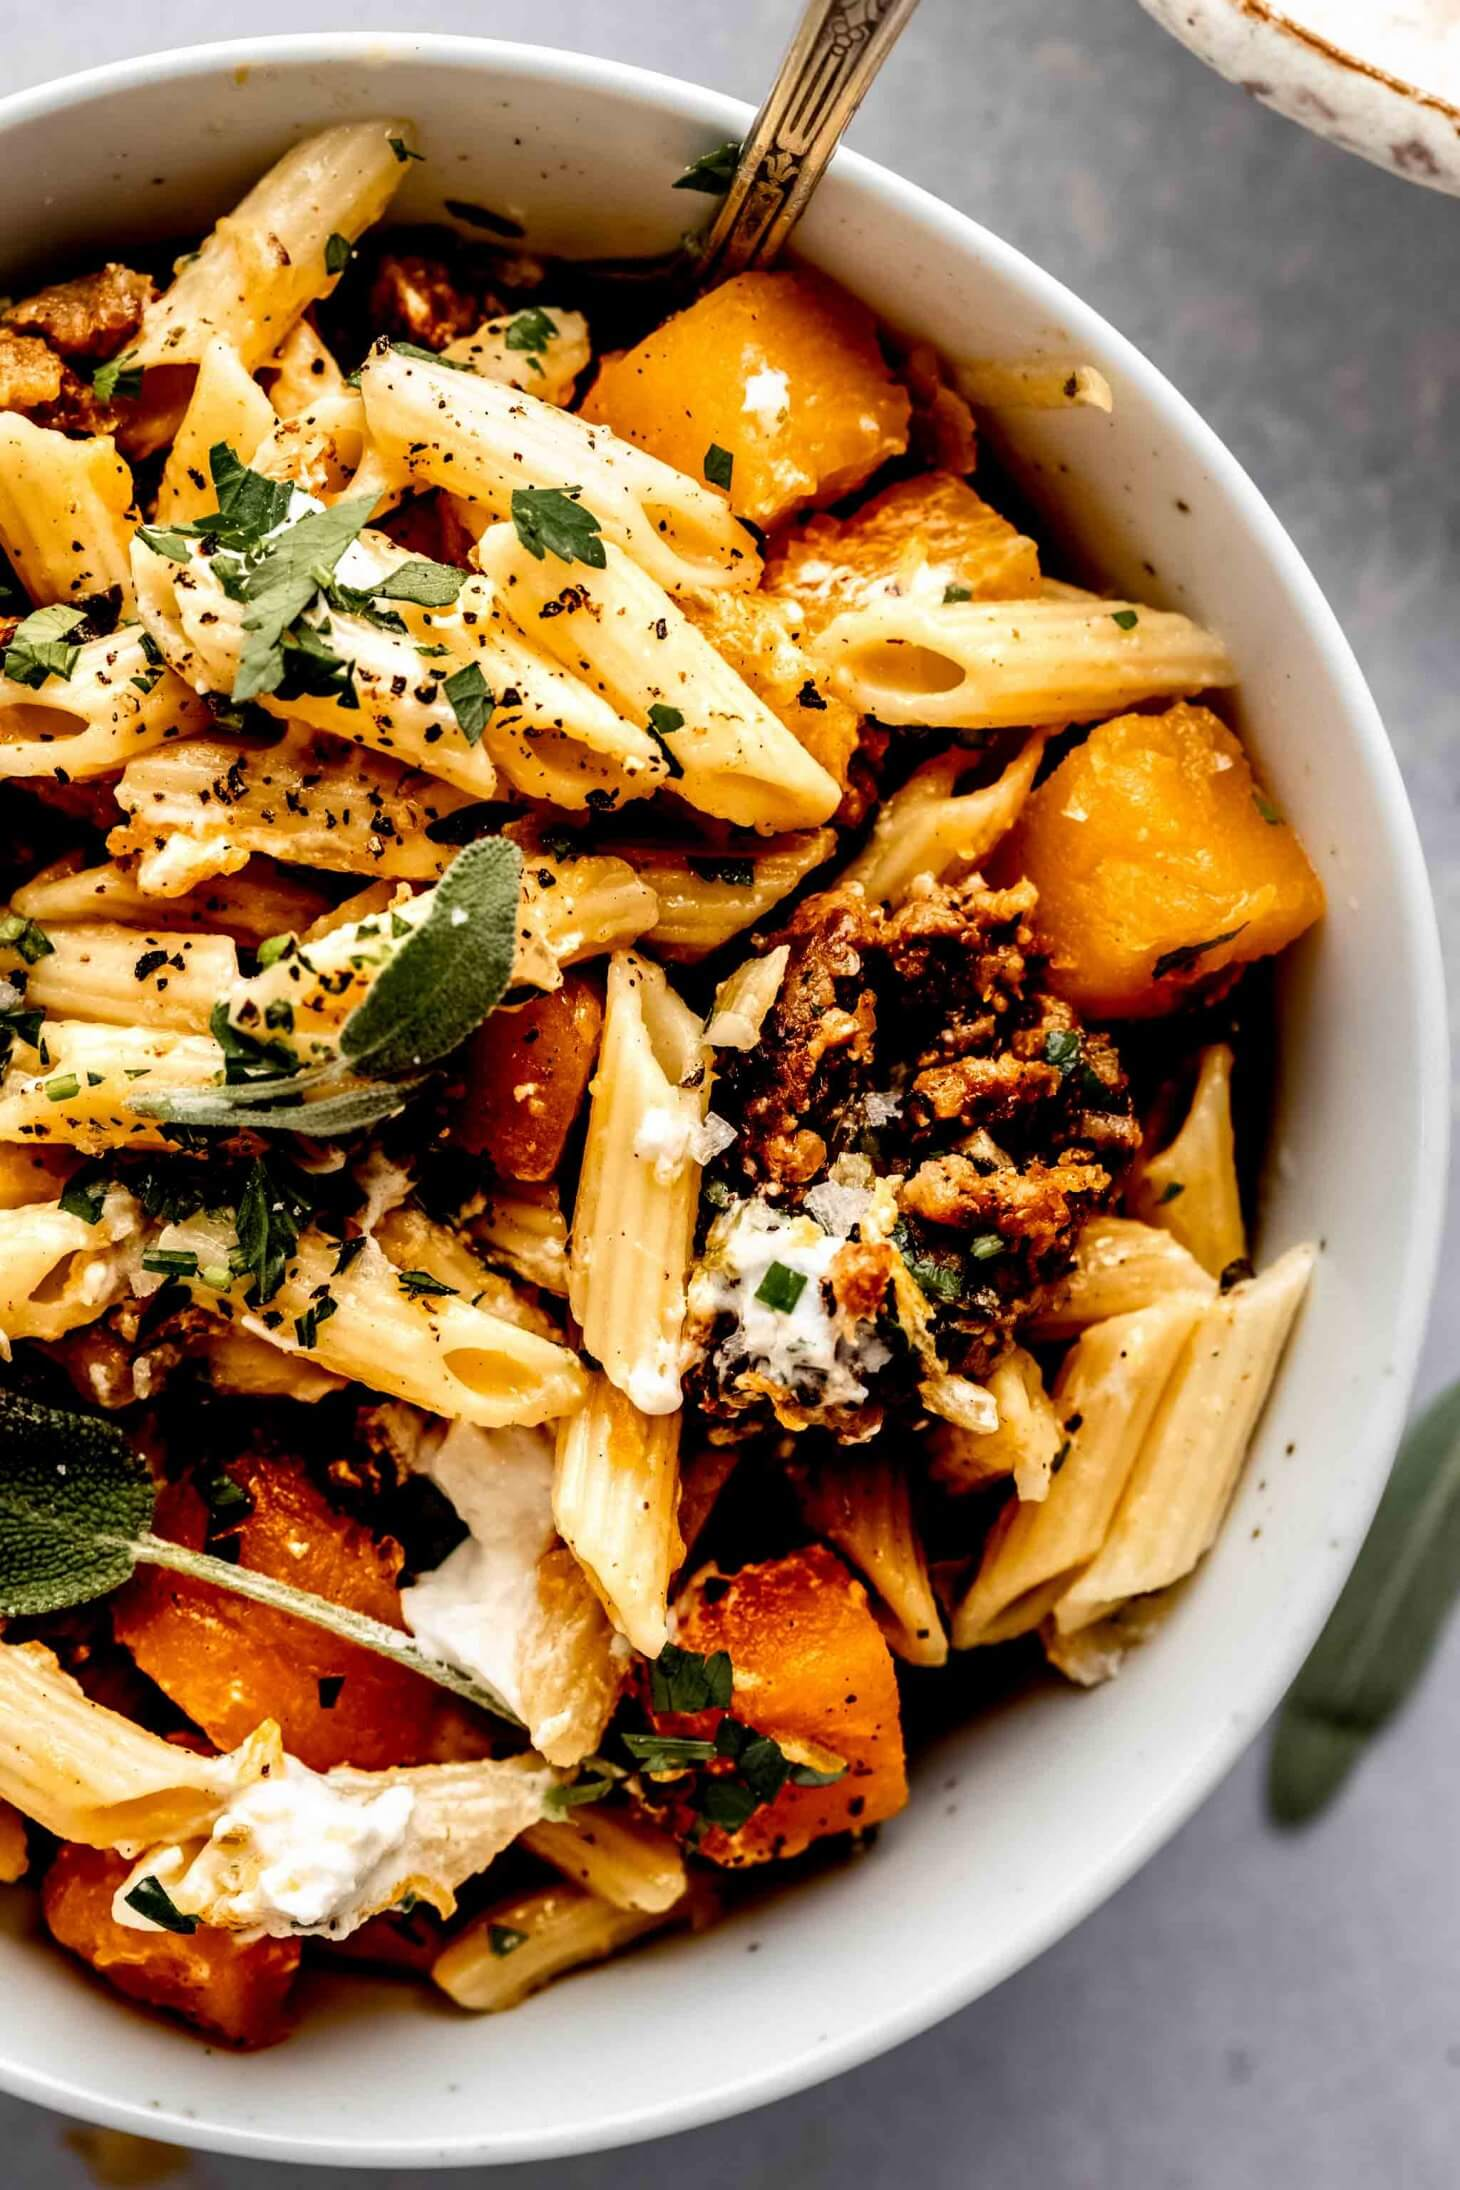 Butternut squash pasta in white bowl.